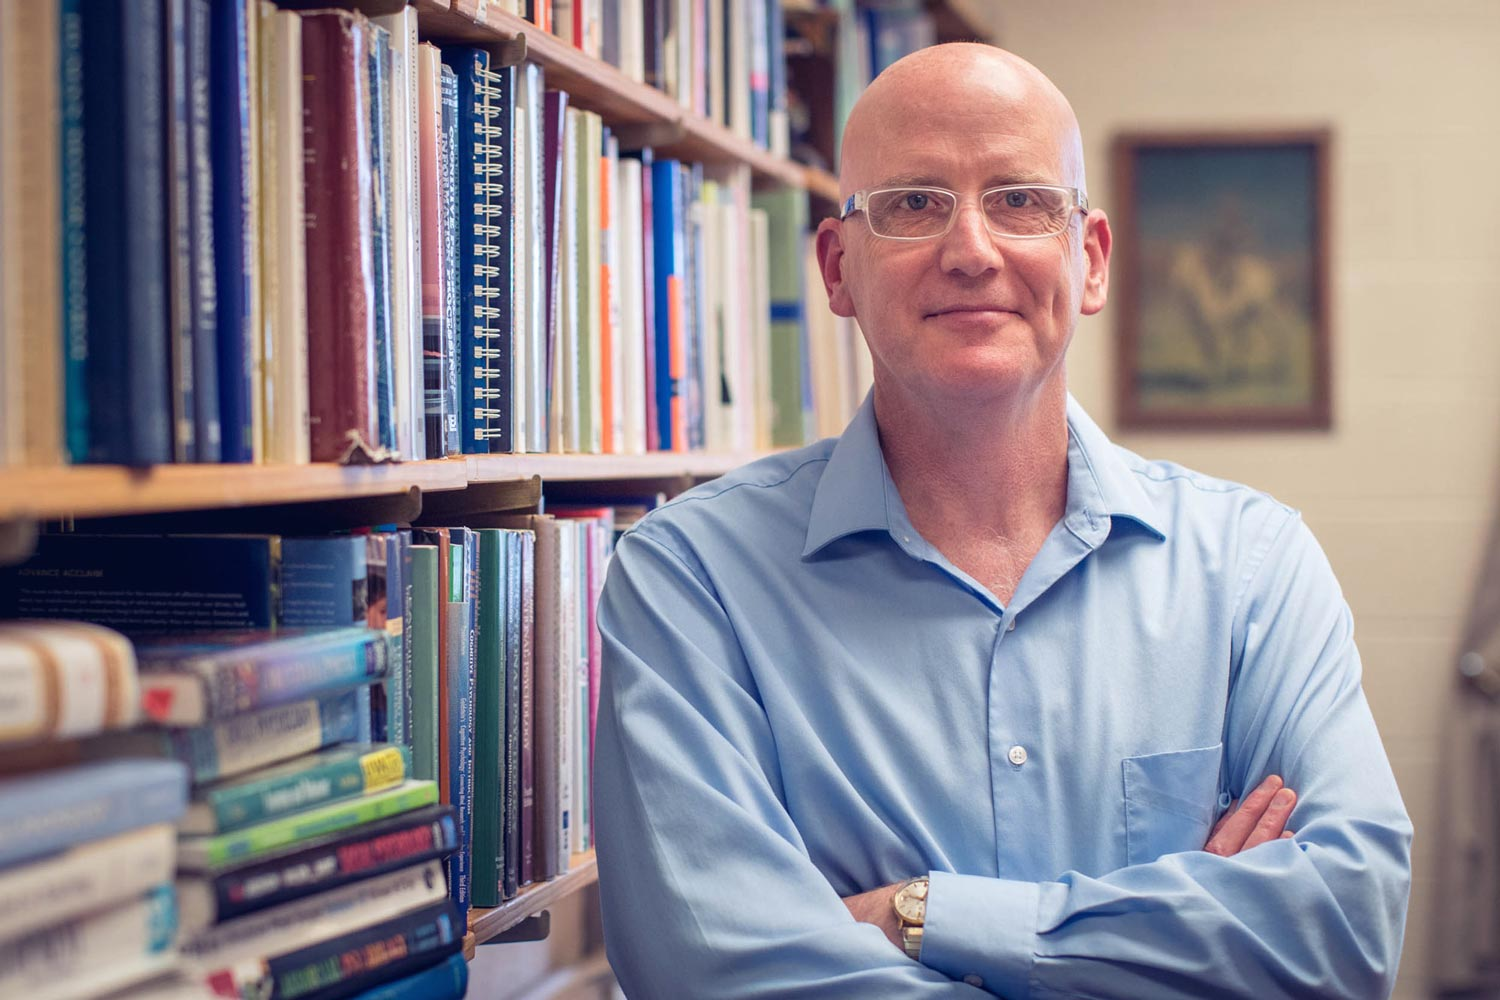 Daniel Willingham's current research concerns the application of cognitive psychology to K-16 education.